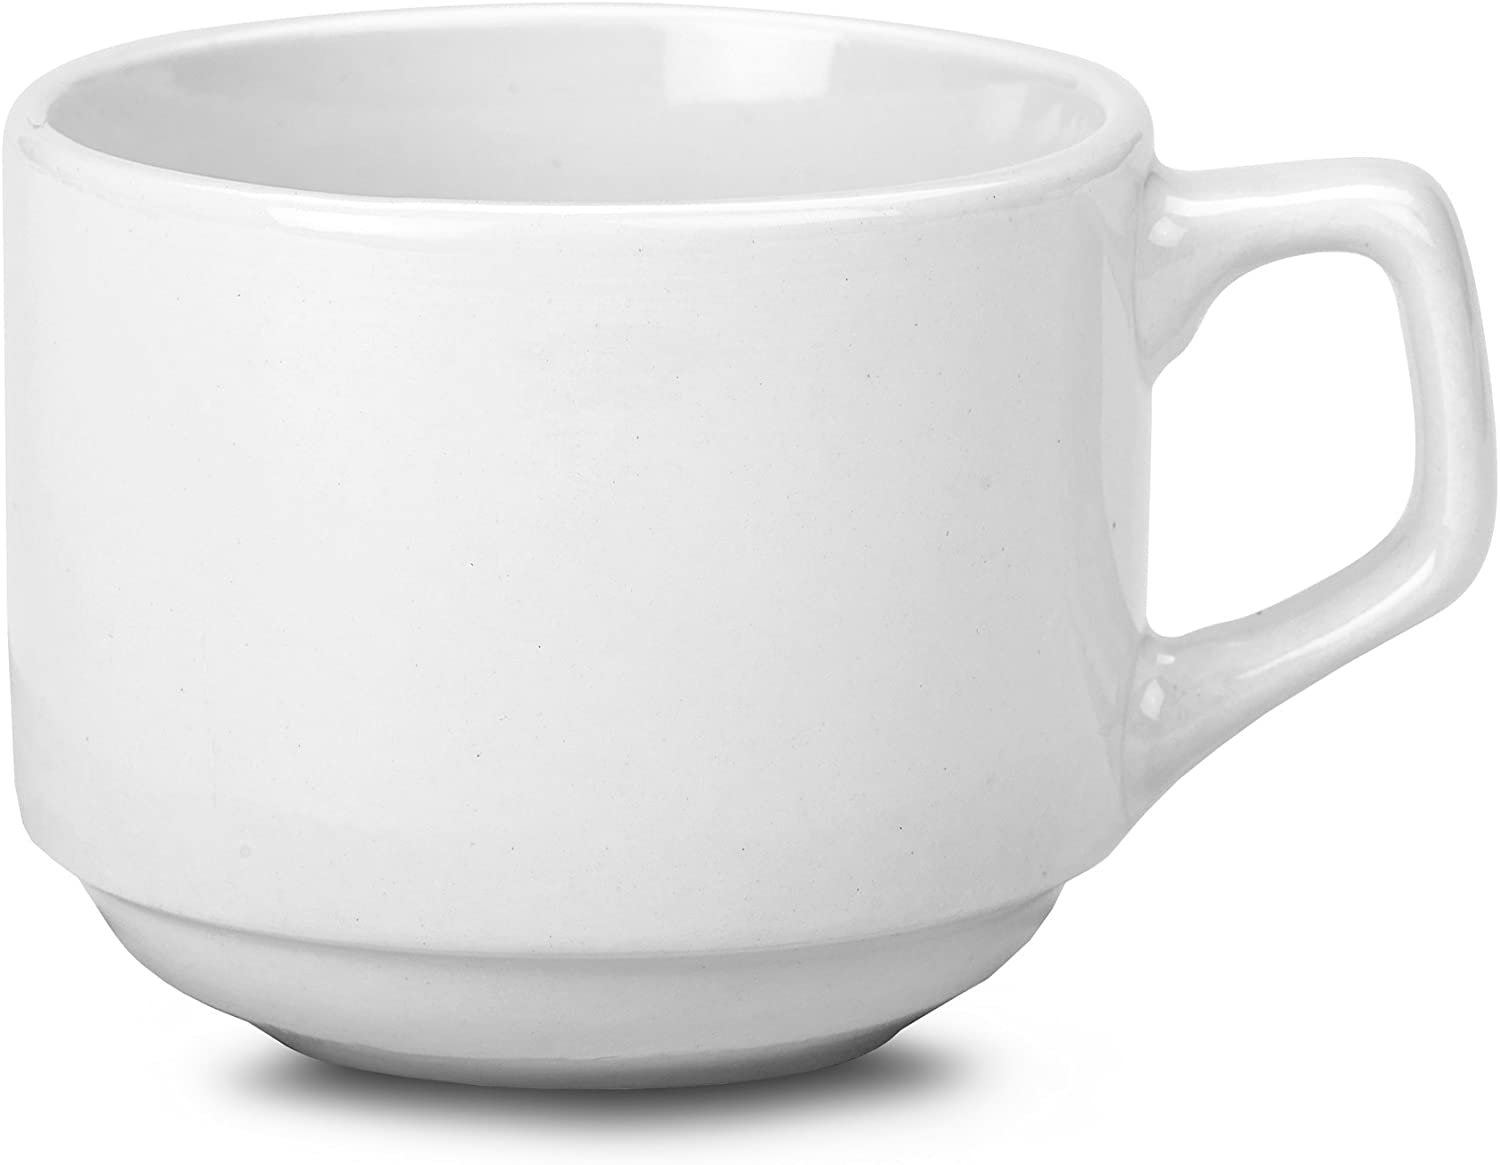 RG Tableware Stacking Cups 7oz 200ml Set of 6 White Porcelain Stackable Tea Cups